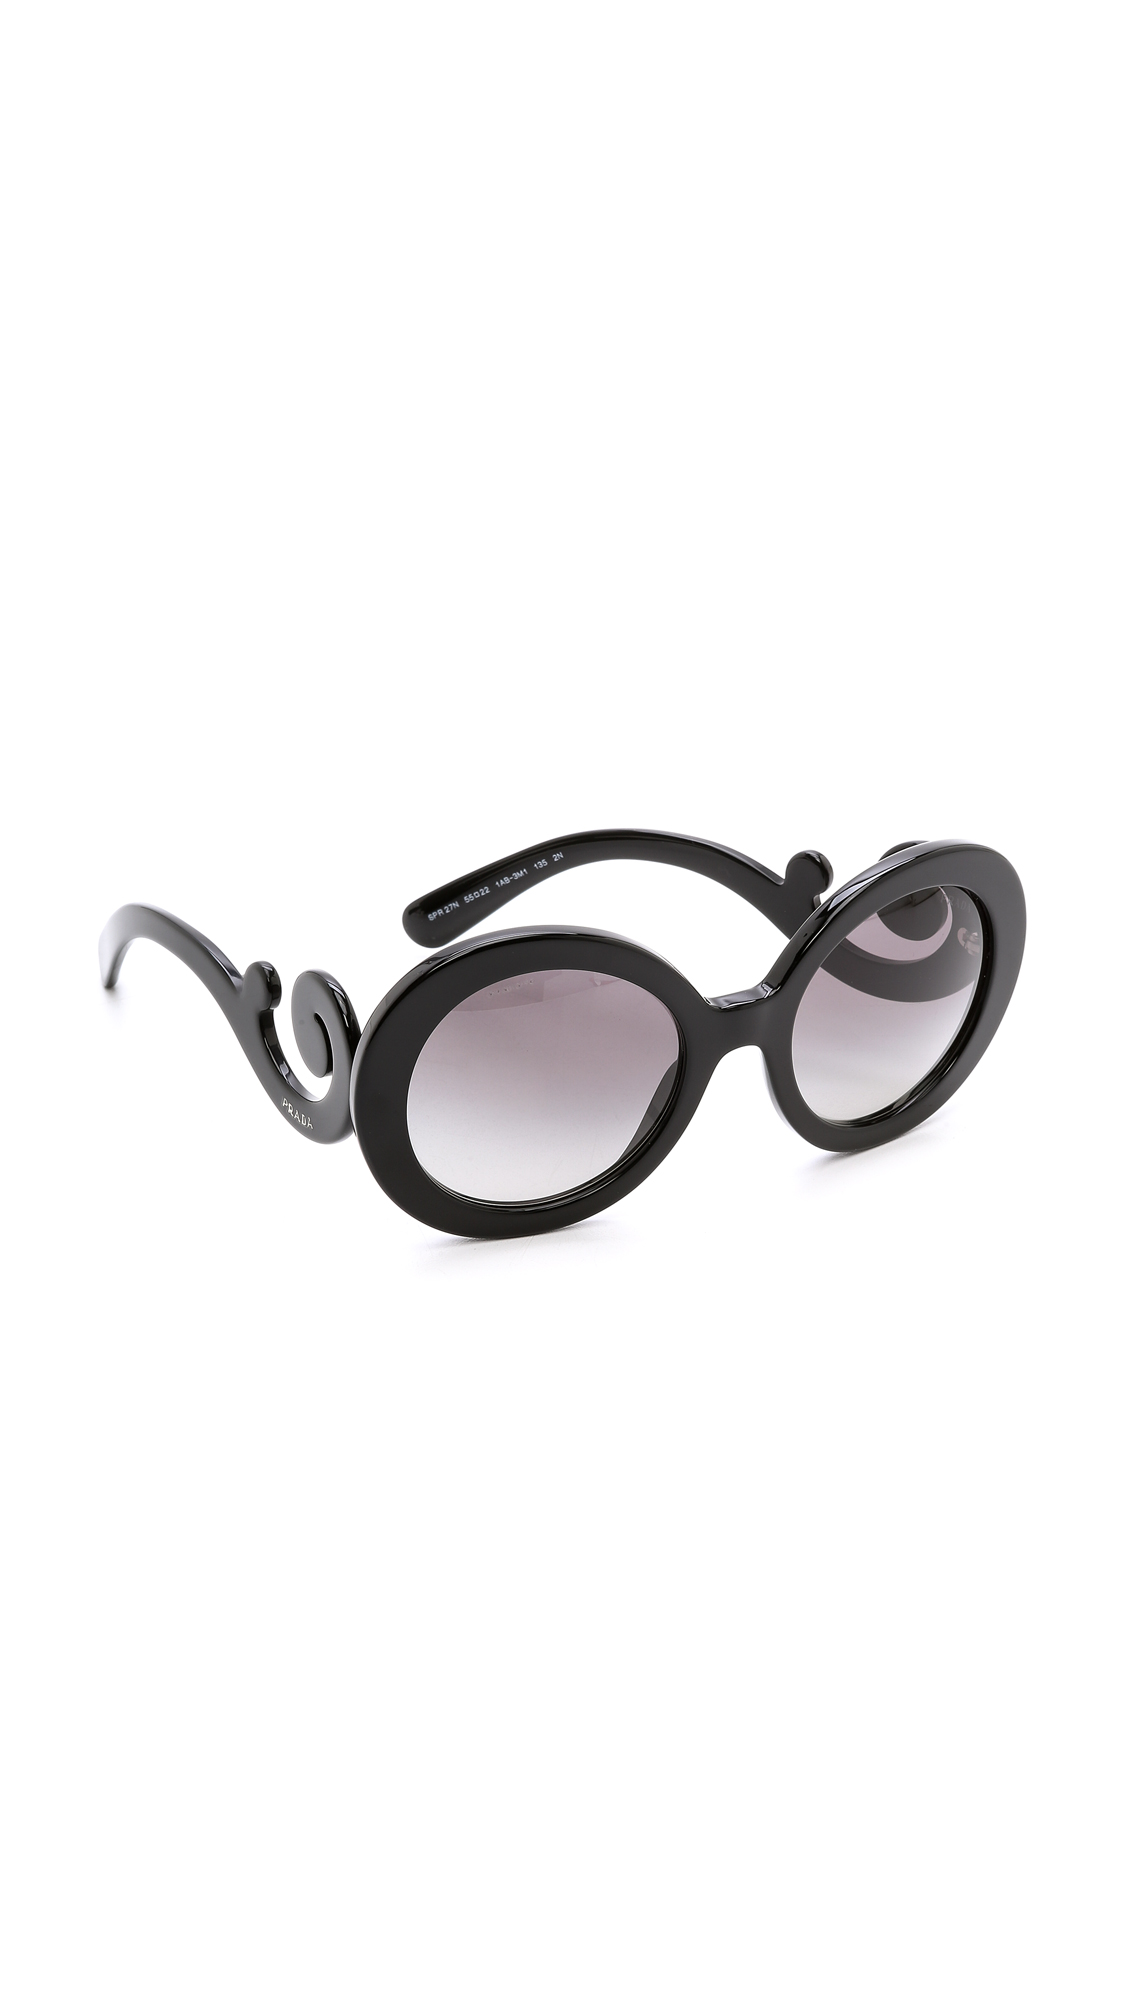 Prada Round Sunglasses - Black/Black at Shopbop